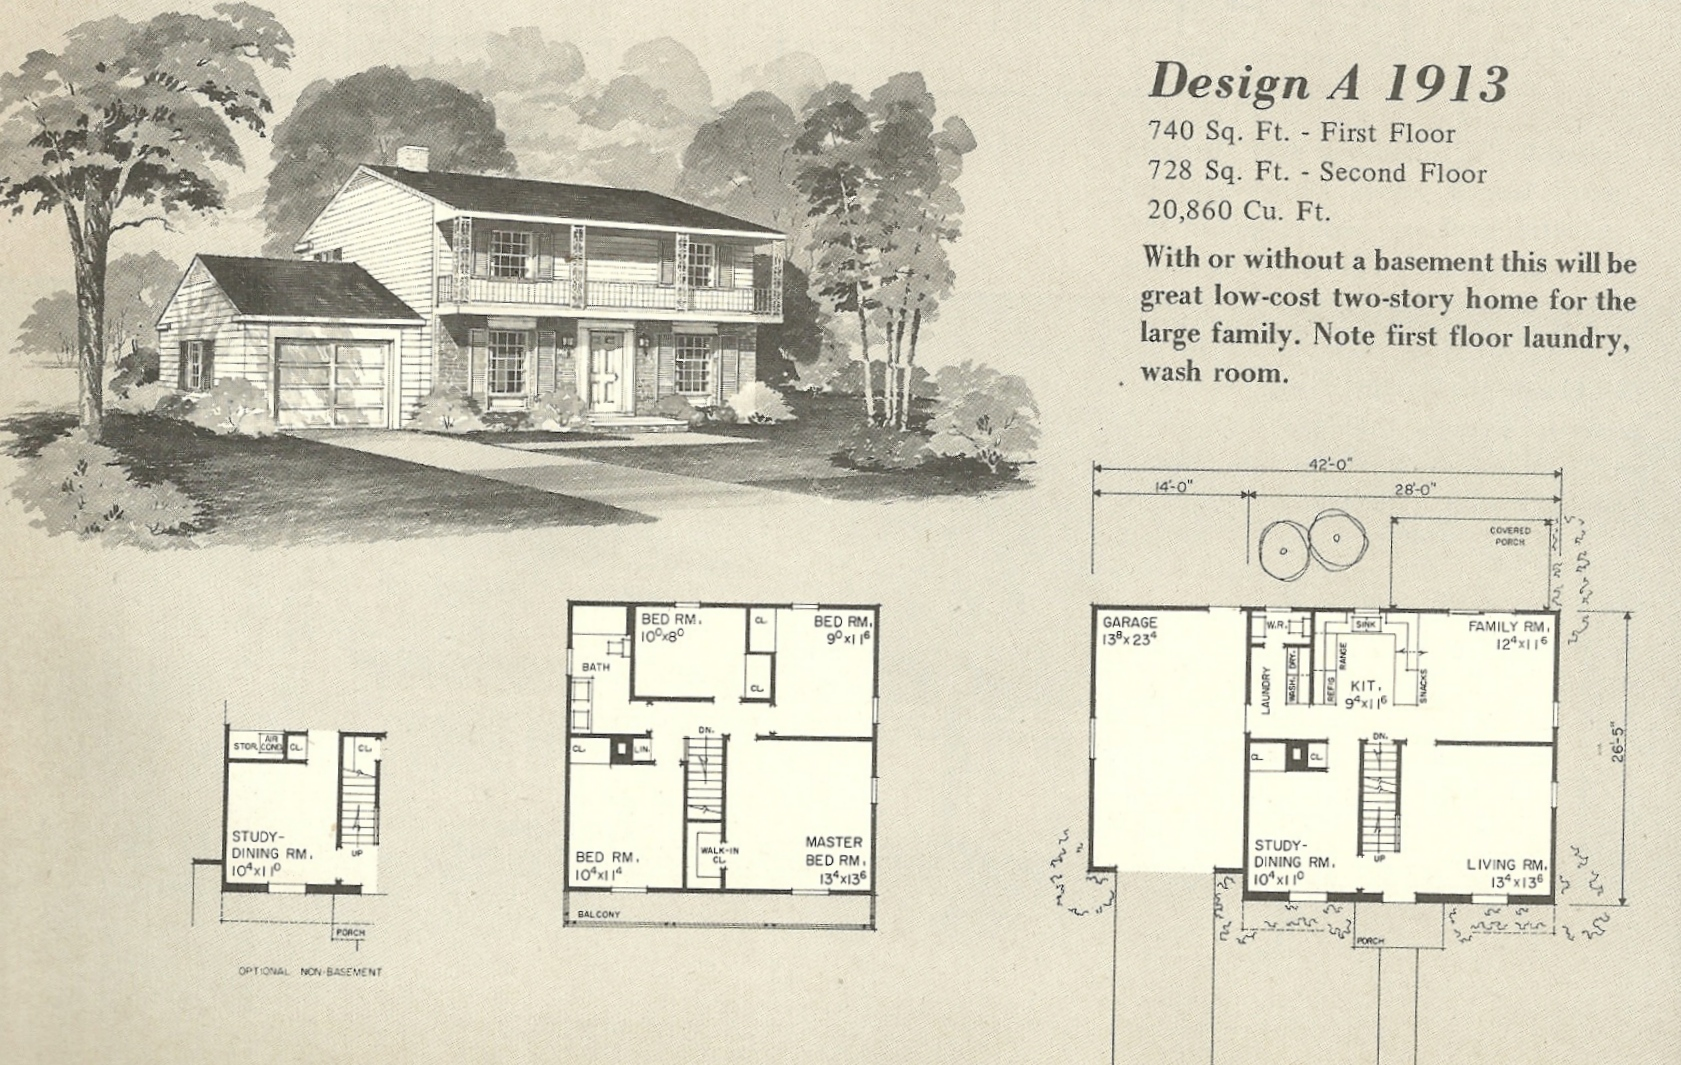 Vintage house plans 1913 antique alter ego for Vintage home plans